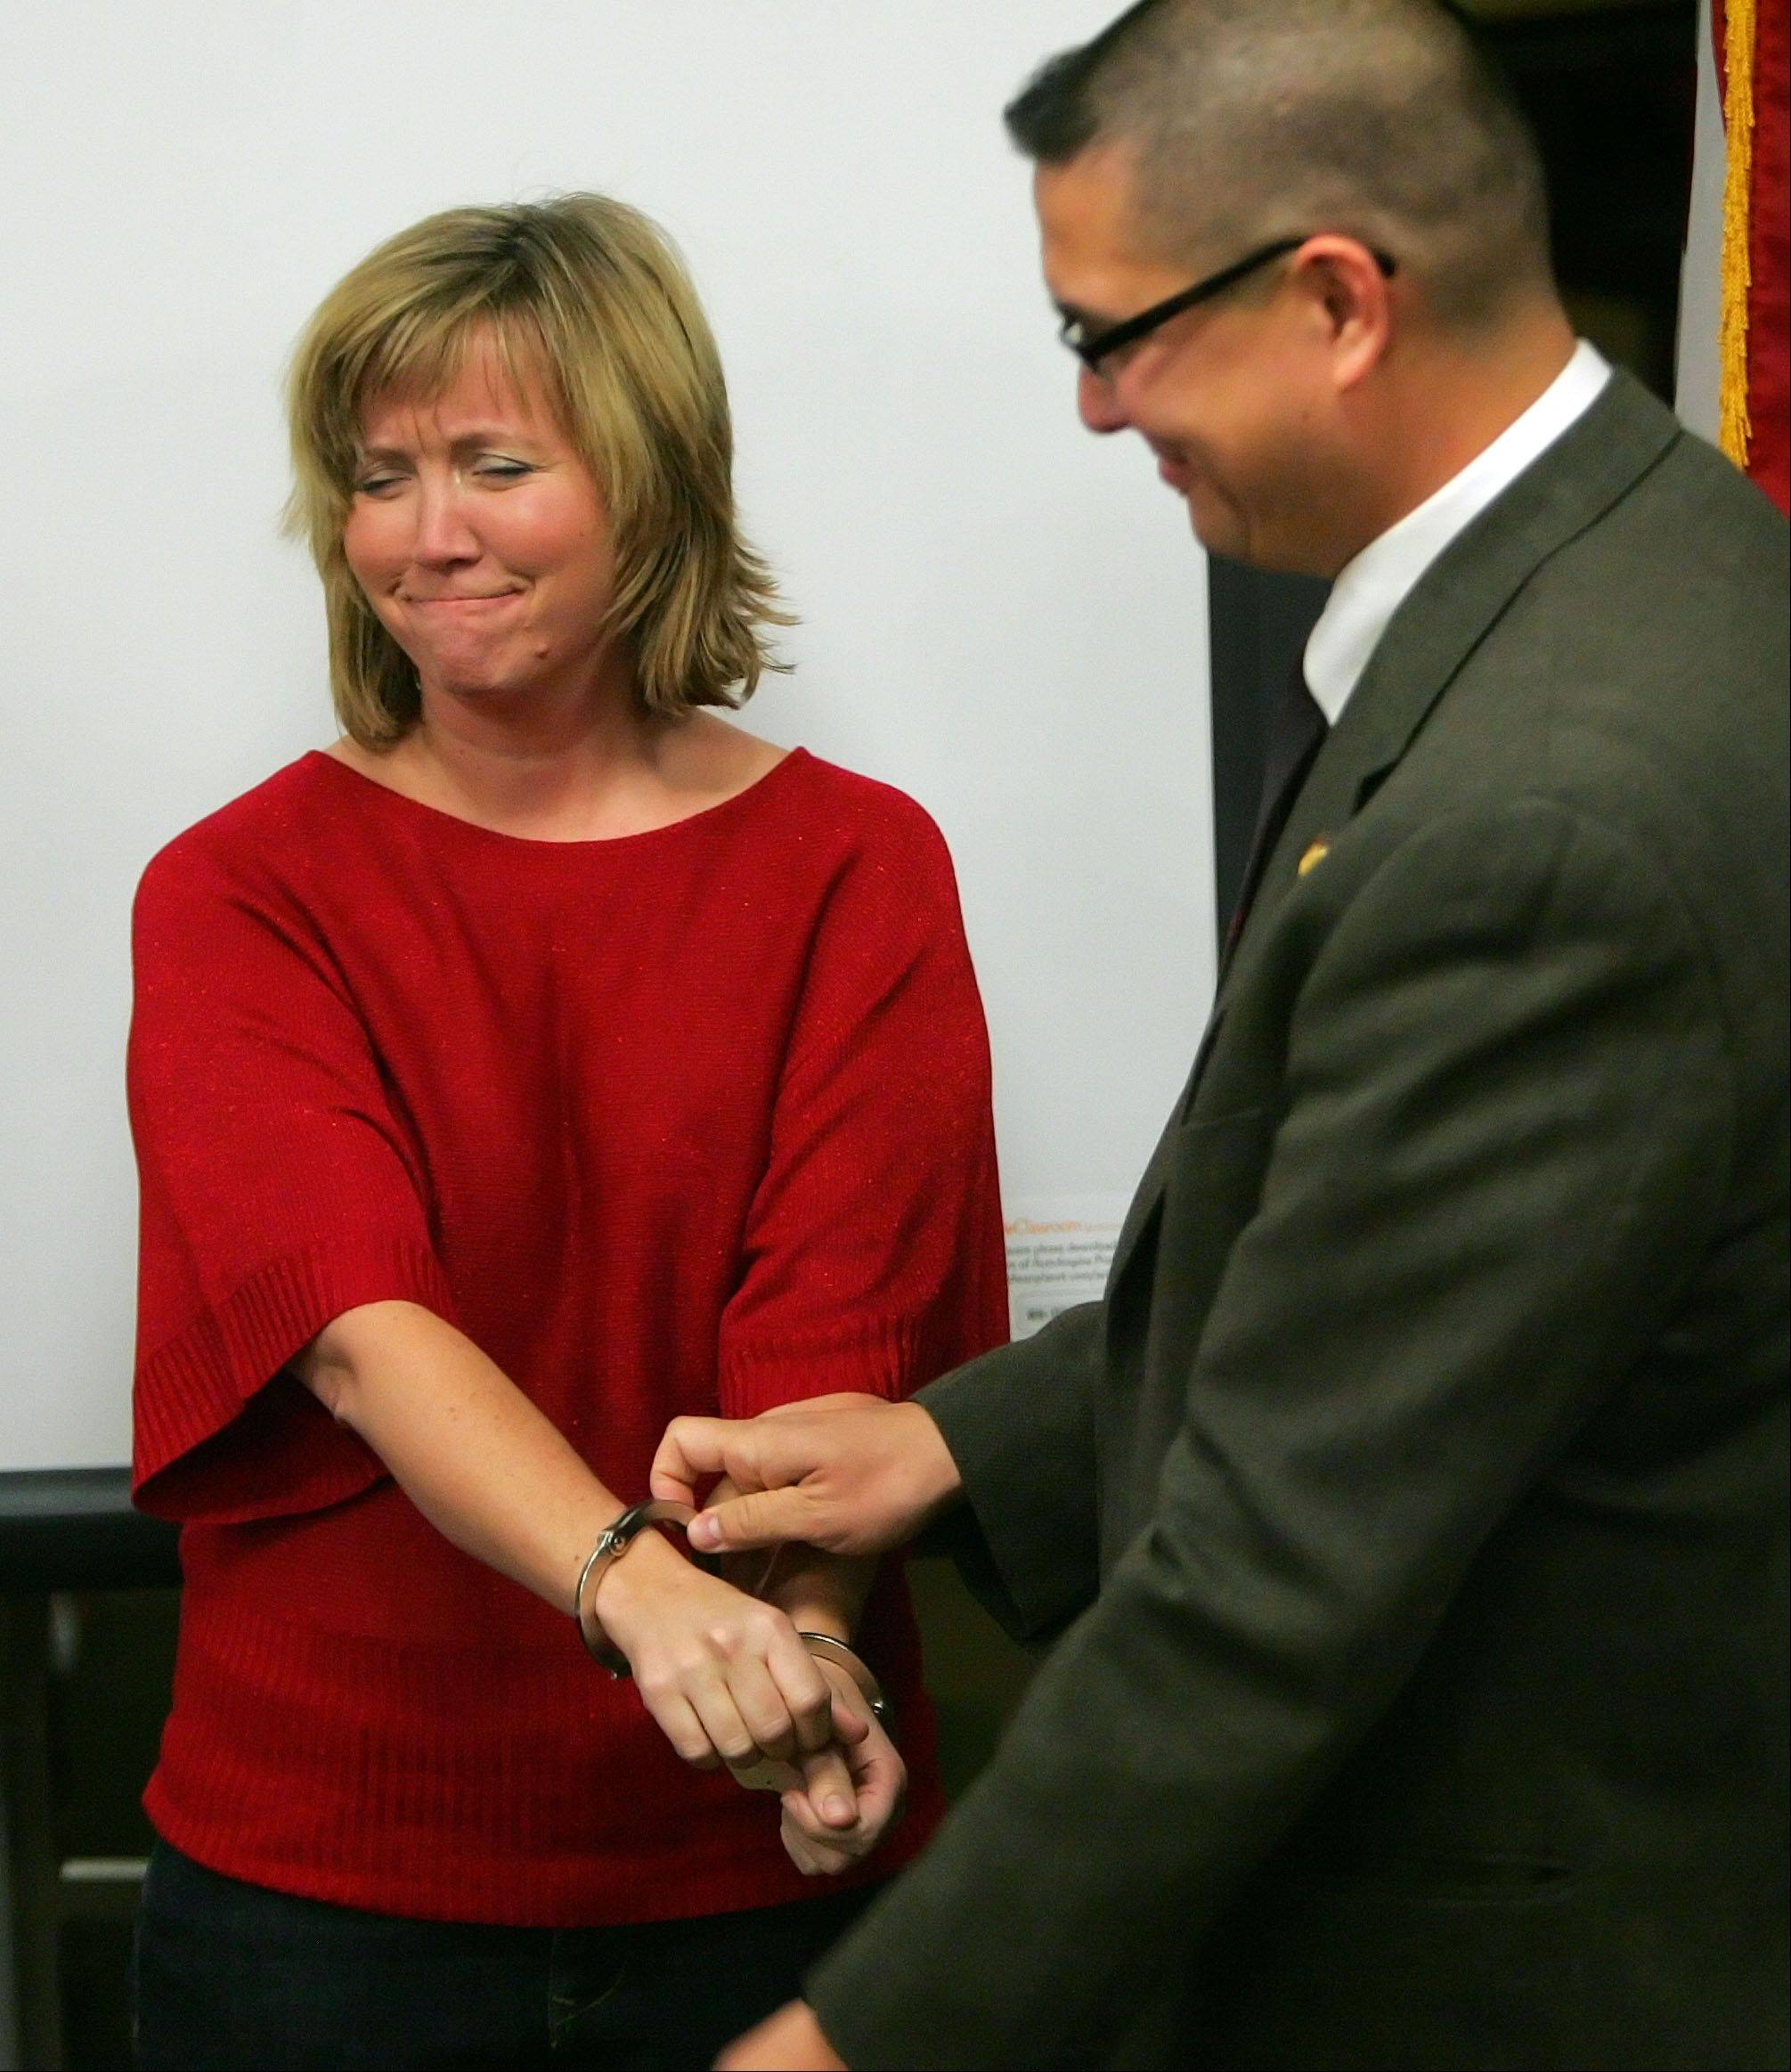 Third grade teacher Kim Zilch, left, plays the roll of an illegal immigrant as courtroom deputy Michael Wing pretends to handcuff her during a visit from U.S. District judge Samuel Der-Yeghiayan at Butterfield School in Libertyville Friday. Der-Yeghiayan is the first Armenian immigrant federal judge in the United States. The students have been involved in a six-week unit on immigration.